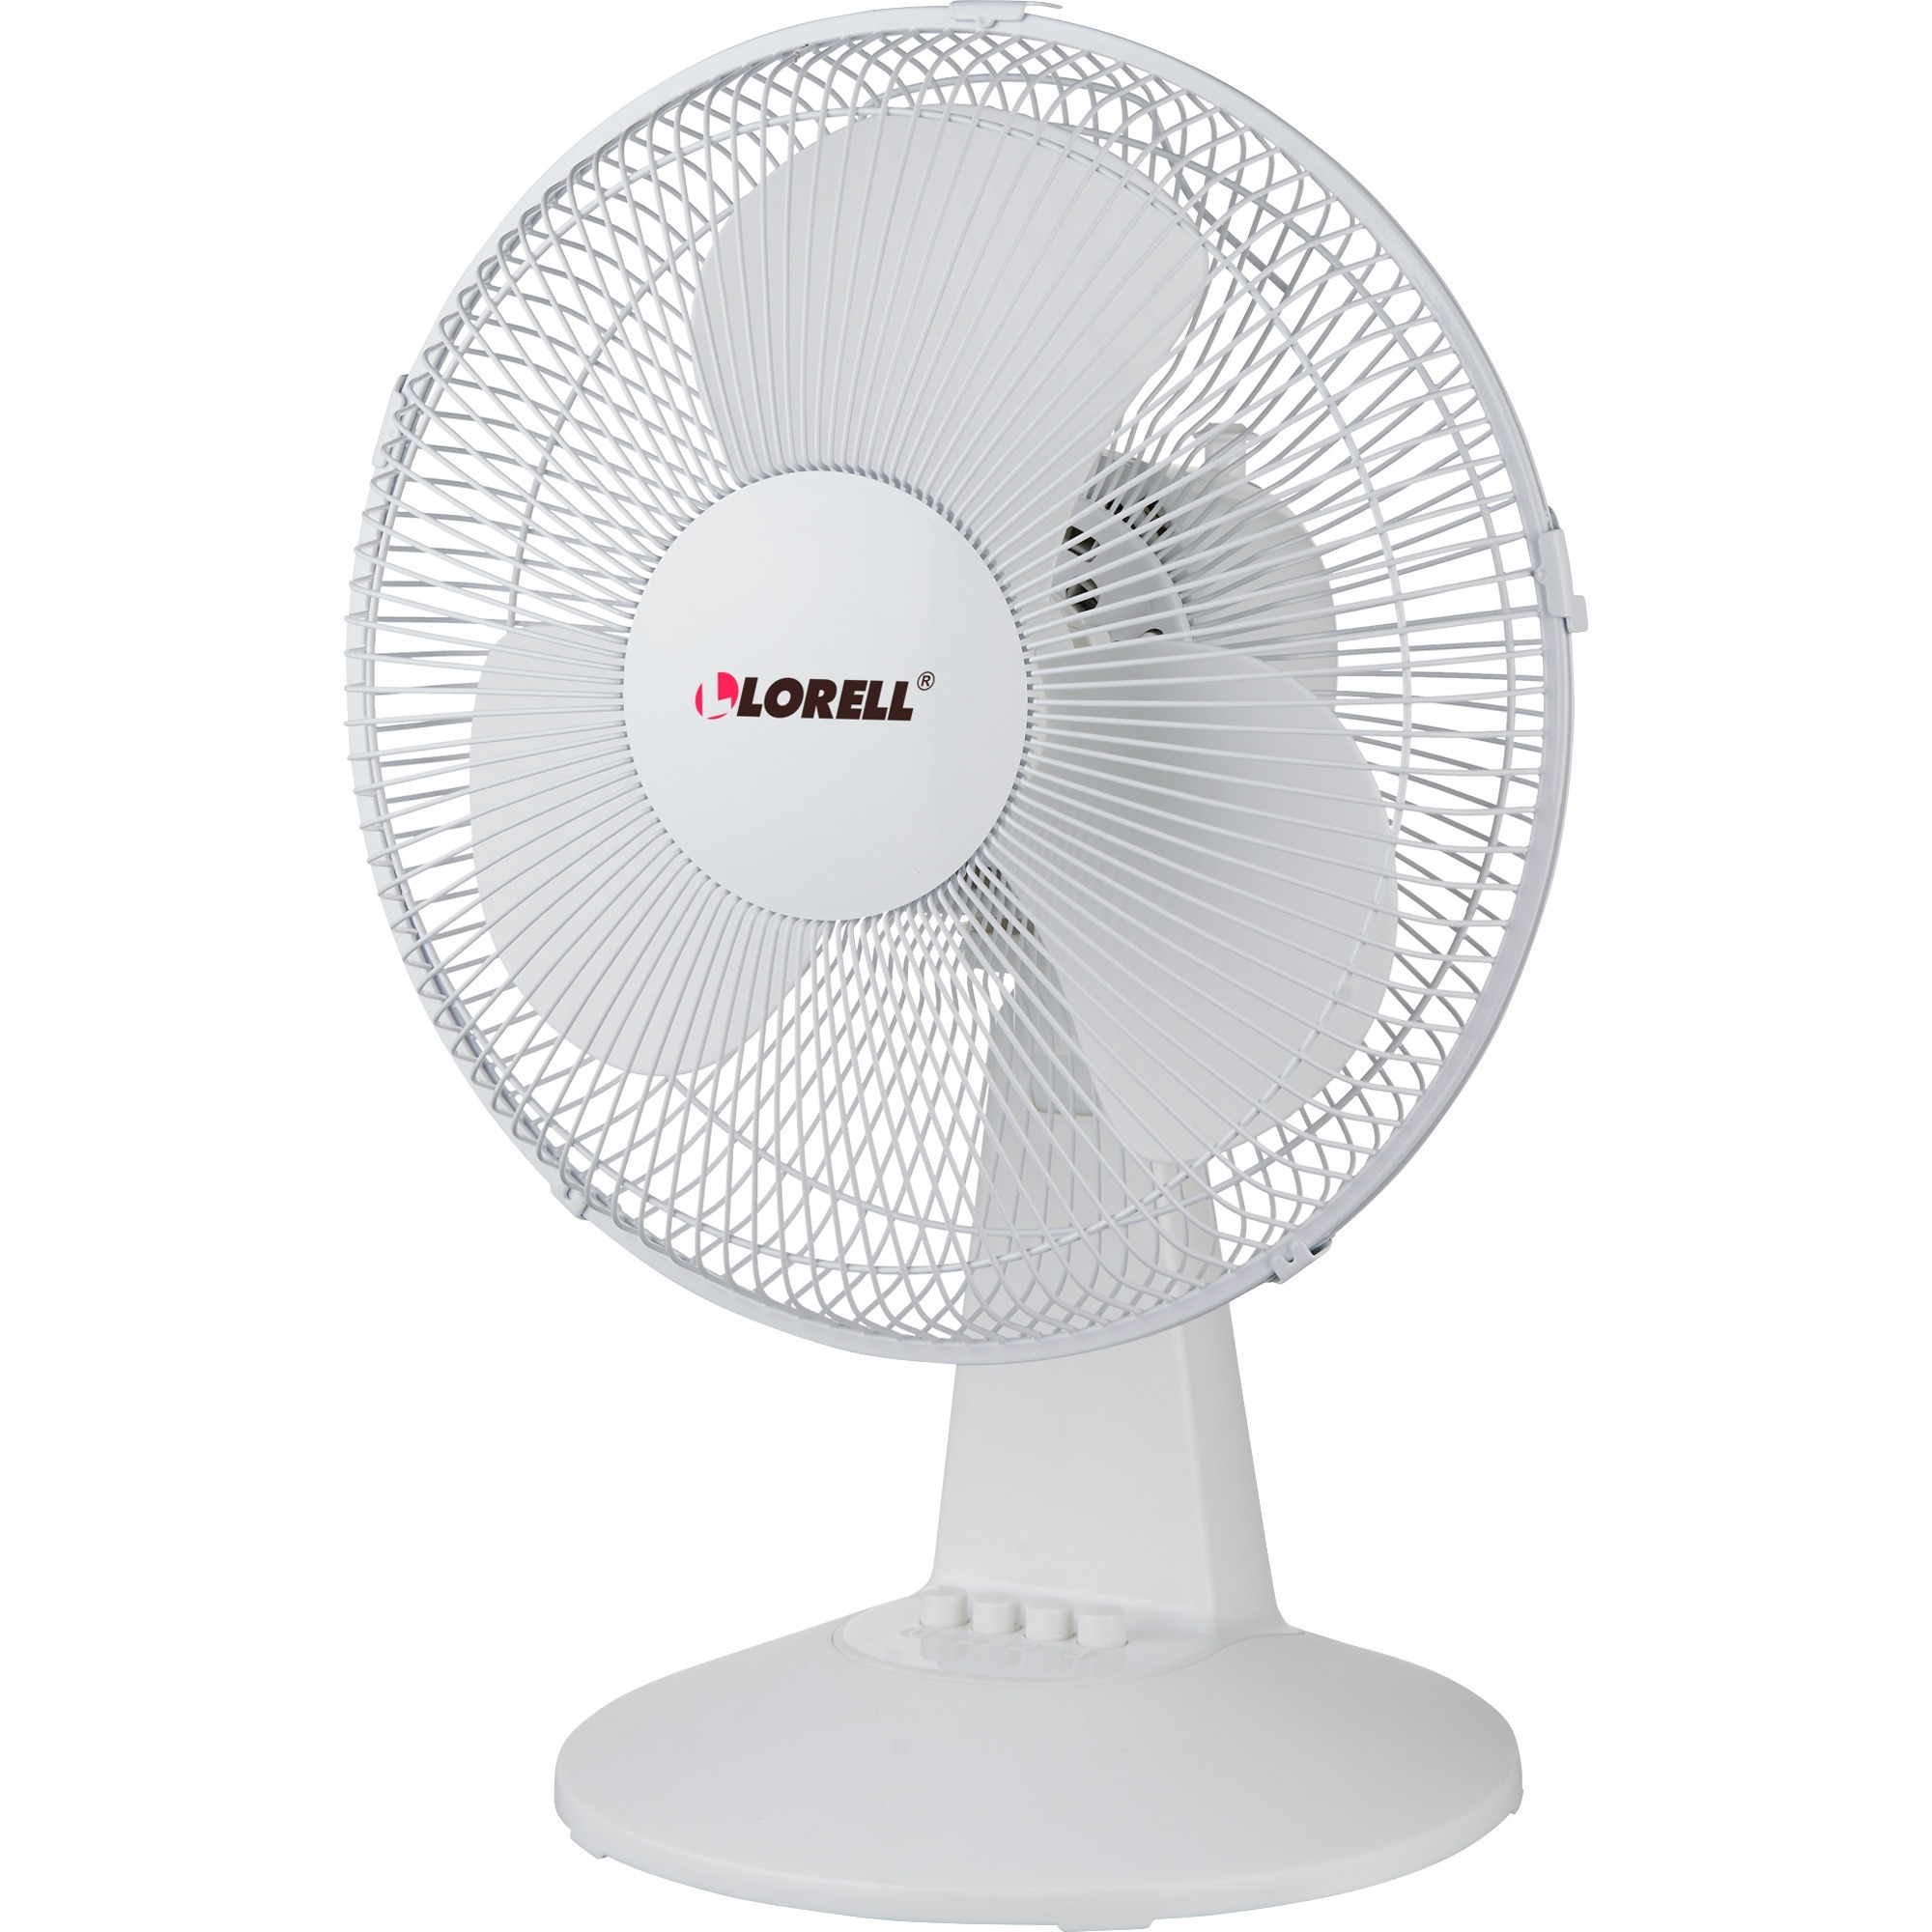 "Lorell, LLR44551, 12"" Oscillating Desk Fan, 1 Each, Light Gray"